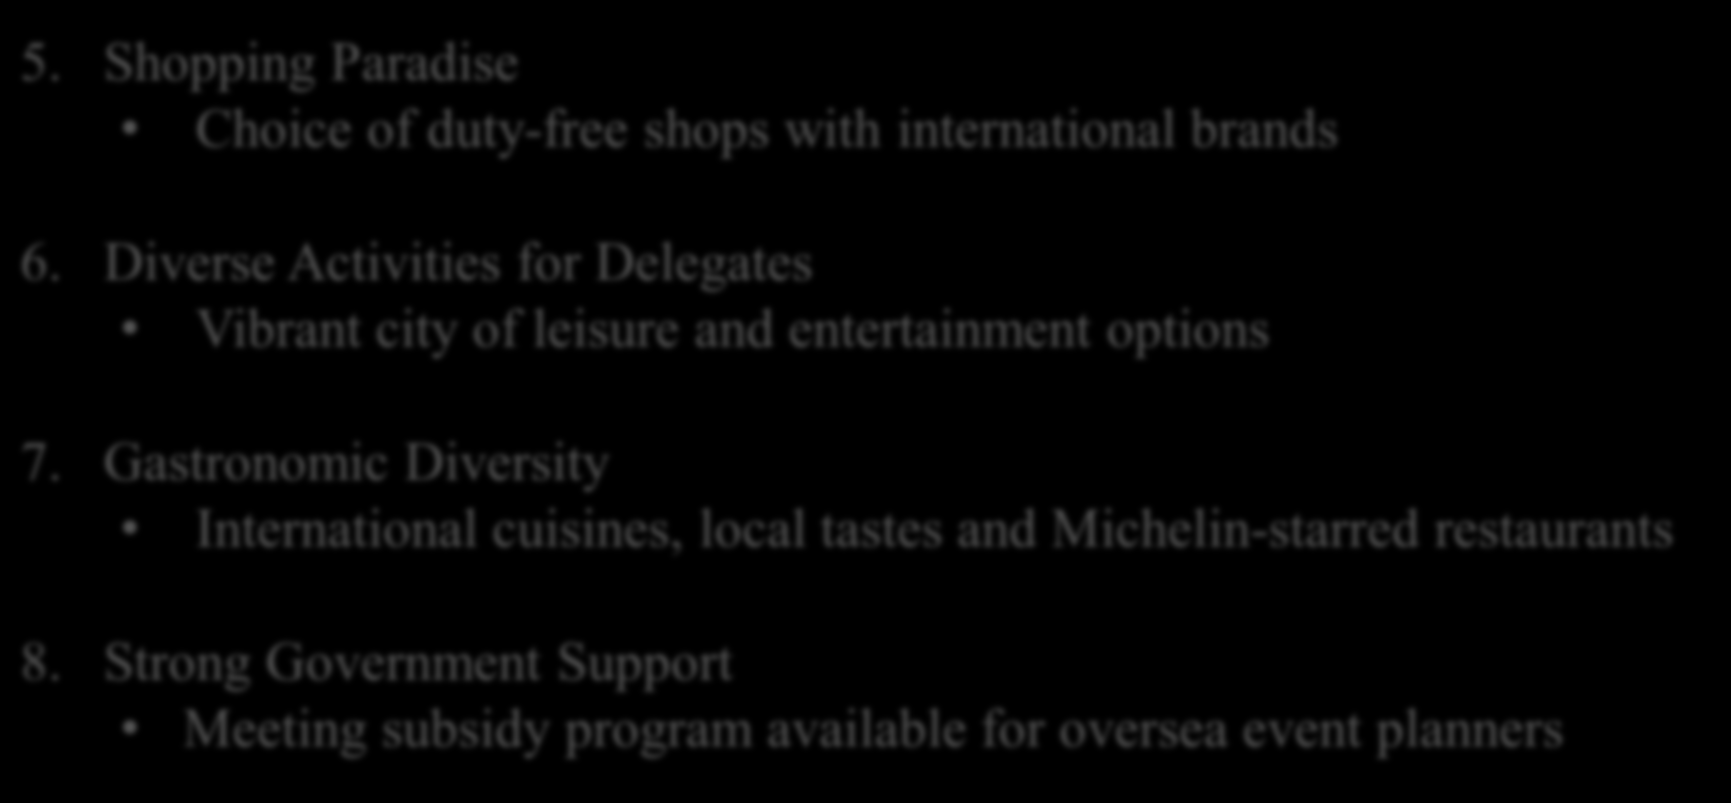 8 REASONS TO HOST YOUR EVENT IN MACAO 5. Shopping Paradise Choice of duty-free shops with international brands 6.